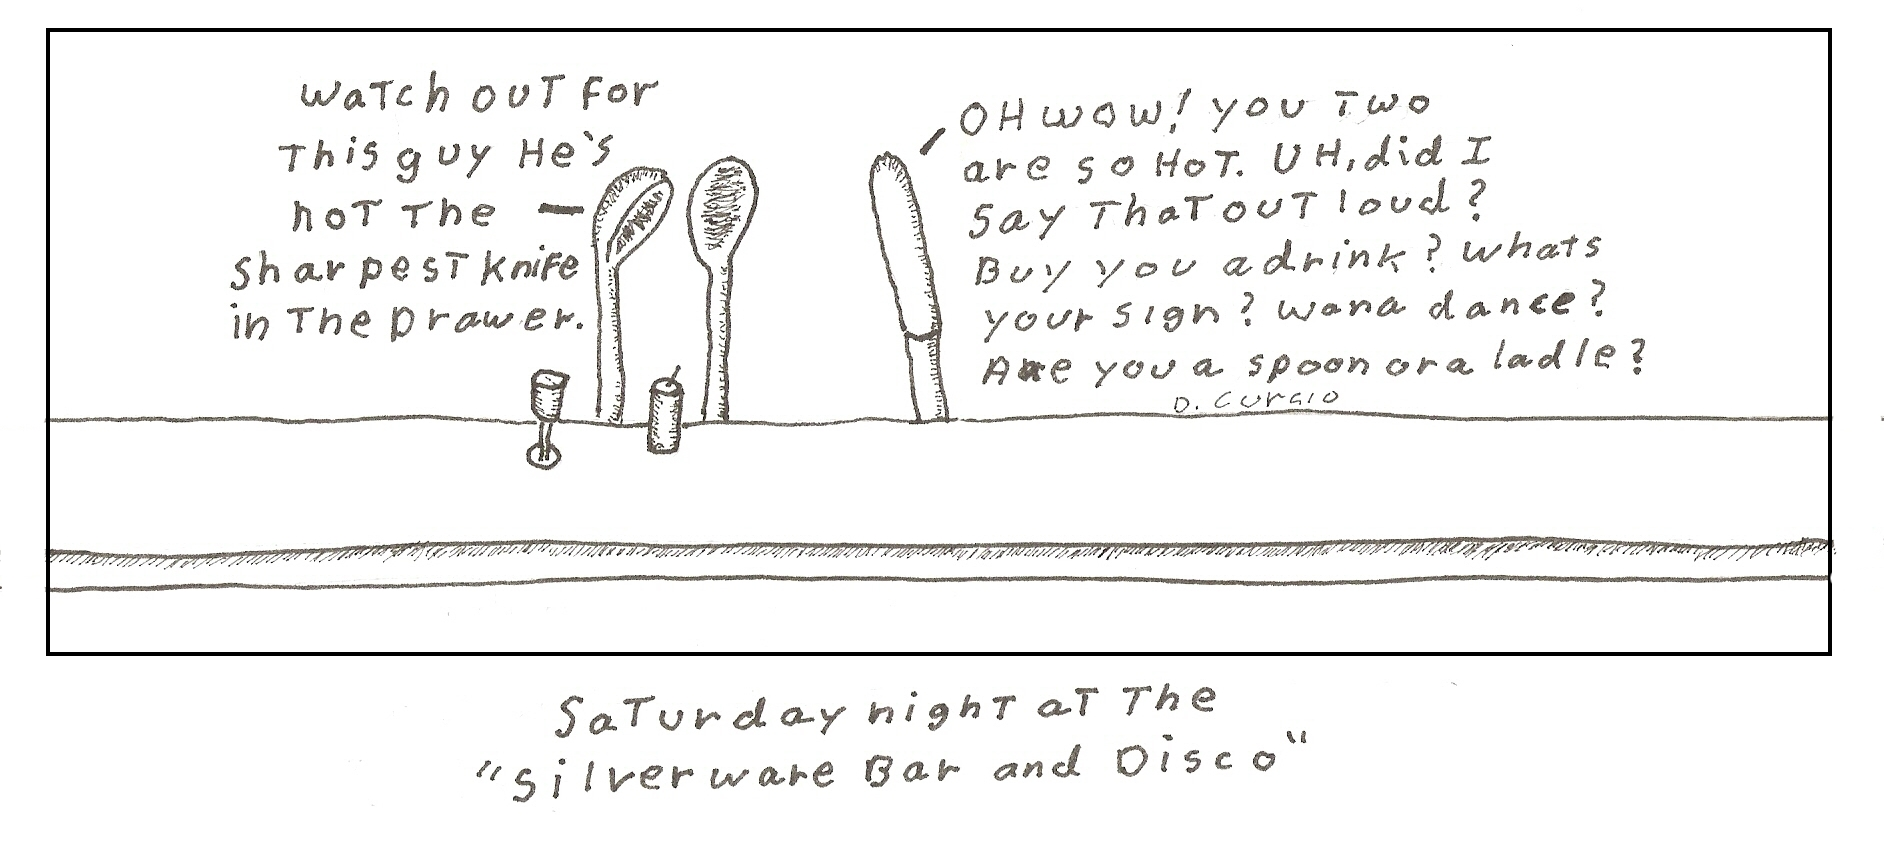 Silverware Bar And Disco